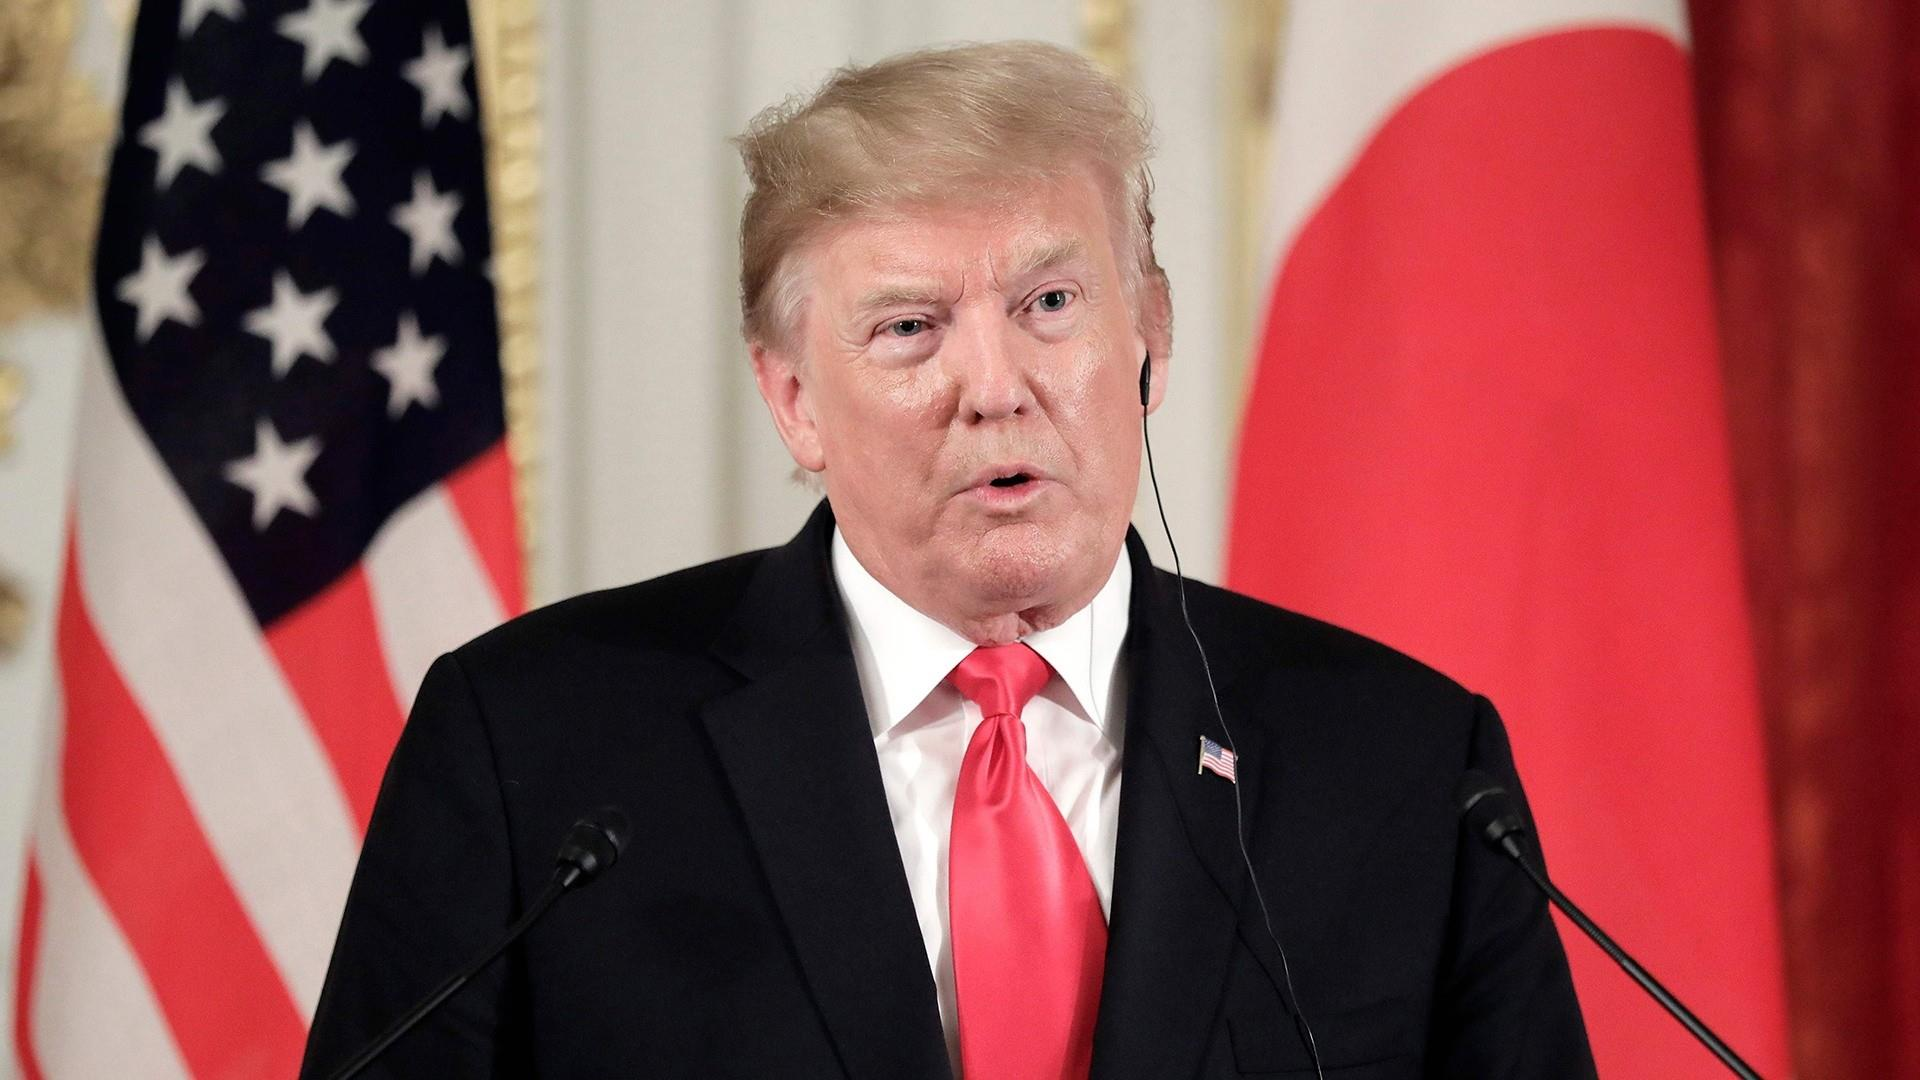 Trump meets with the prime minister of Japan on Memorial Day